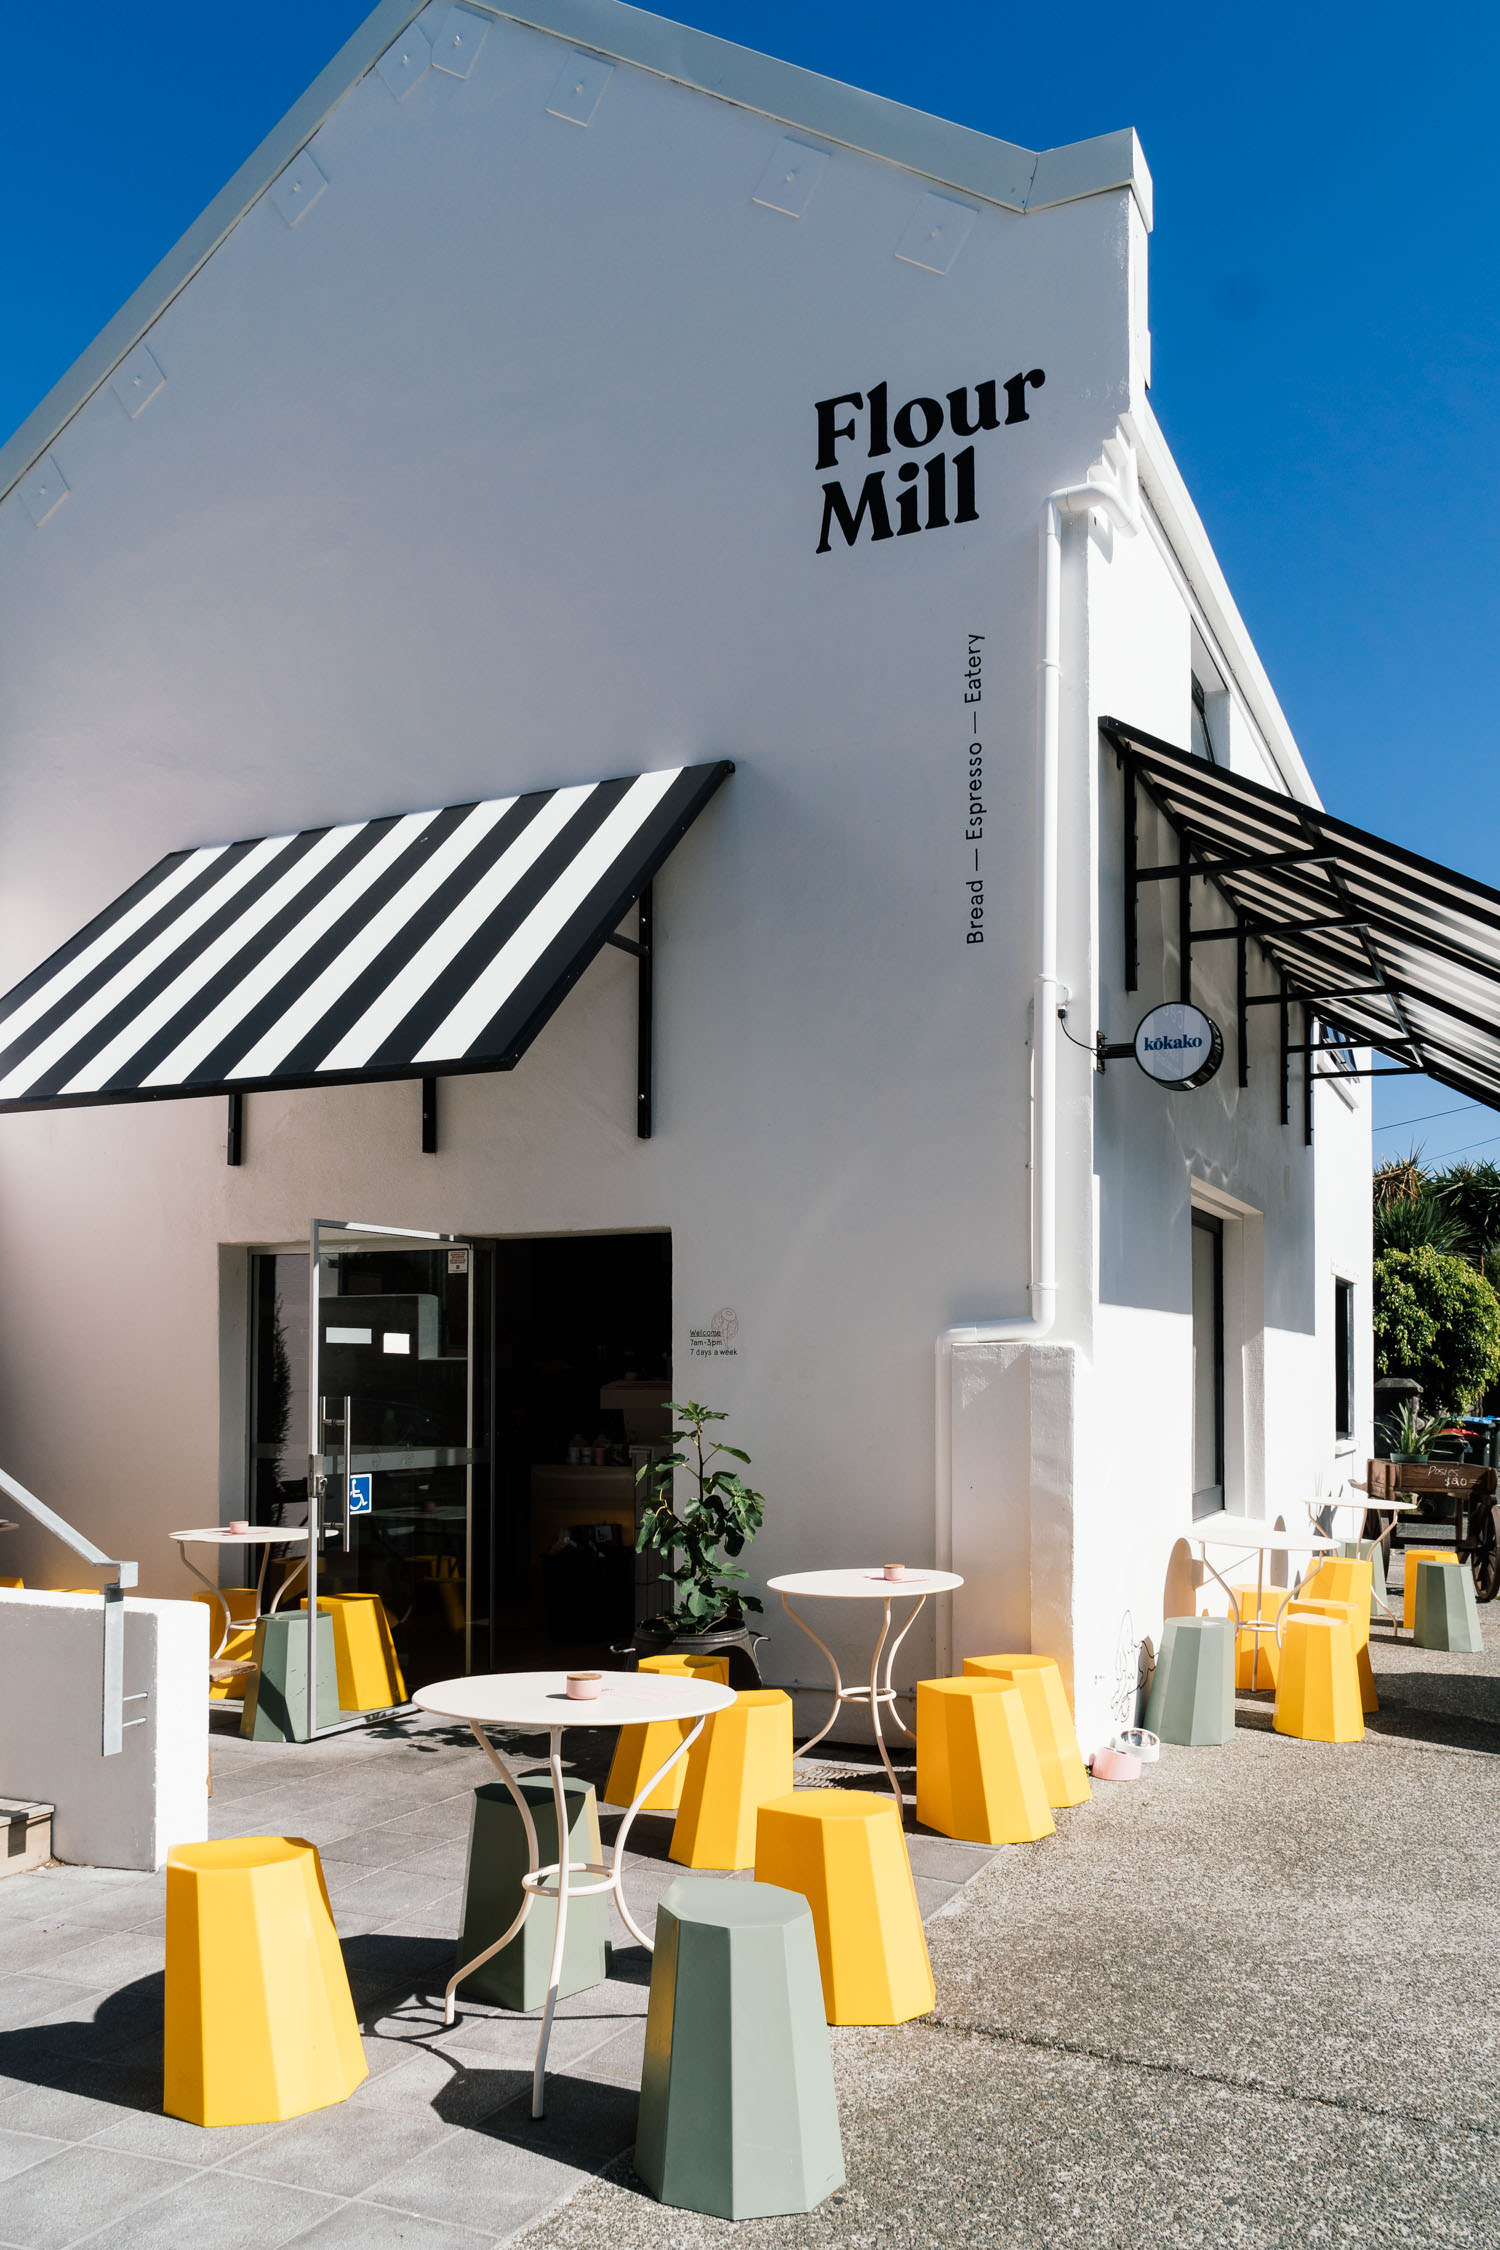 Flour Mill Cafe exterior